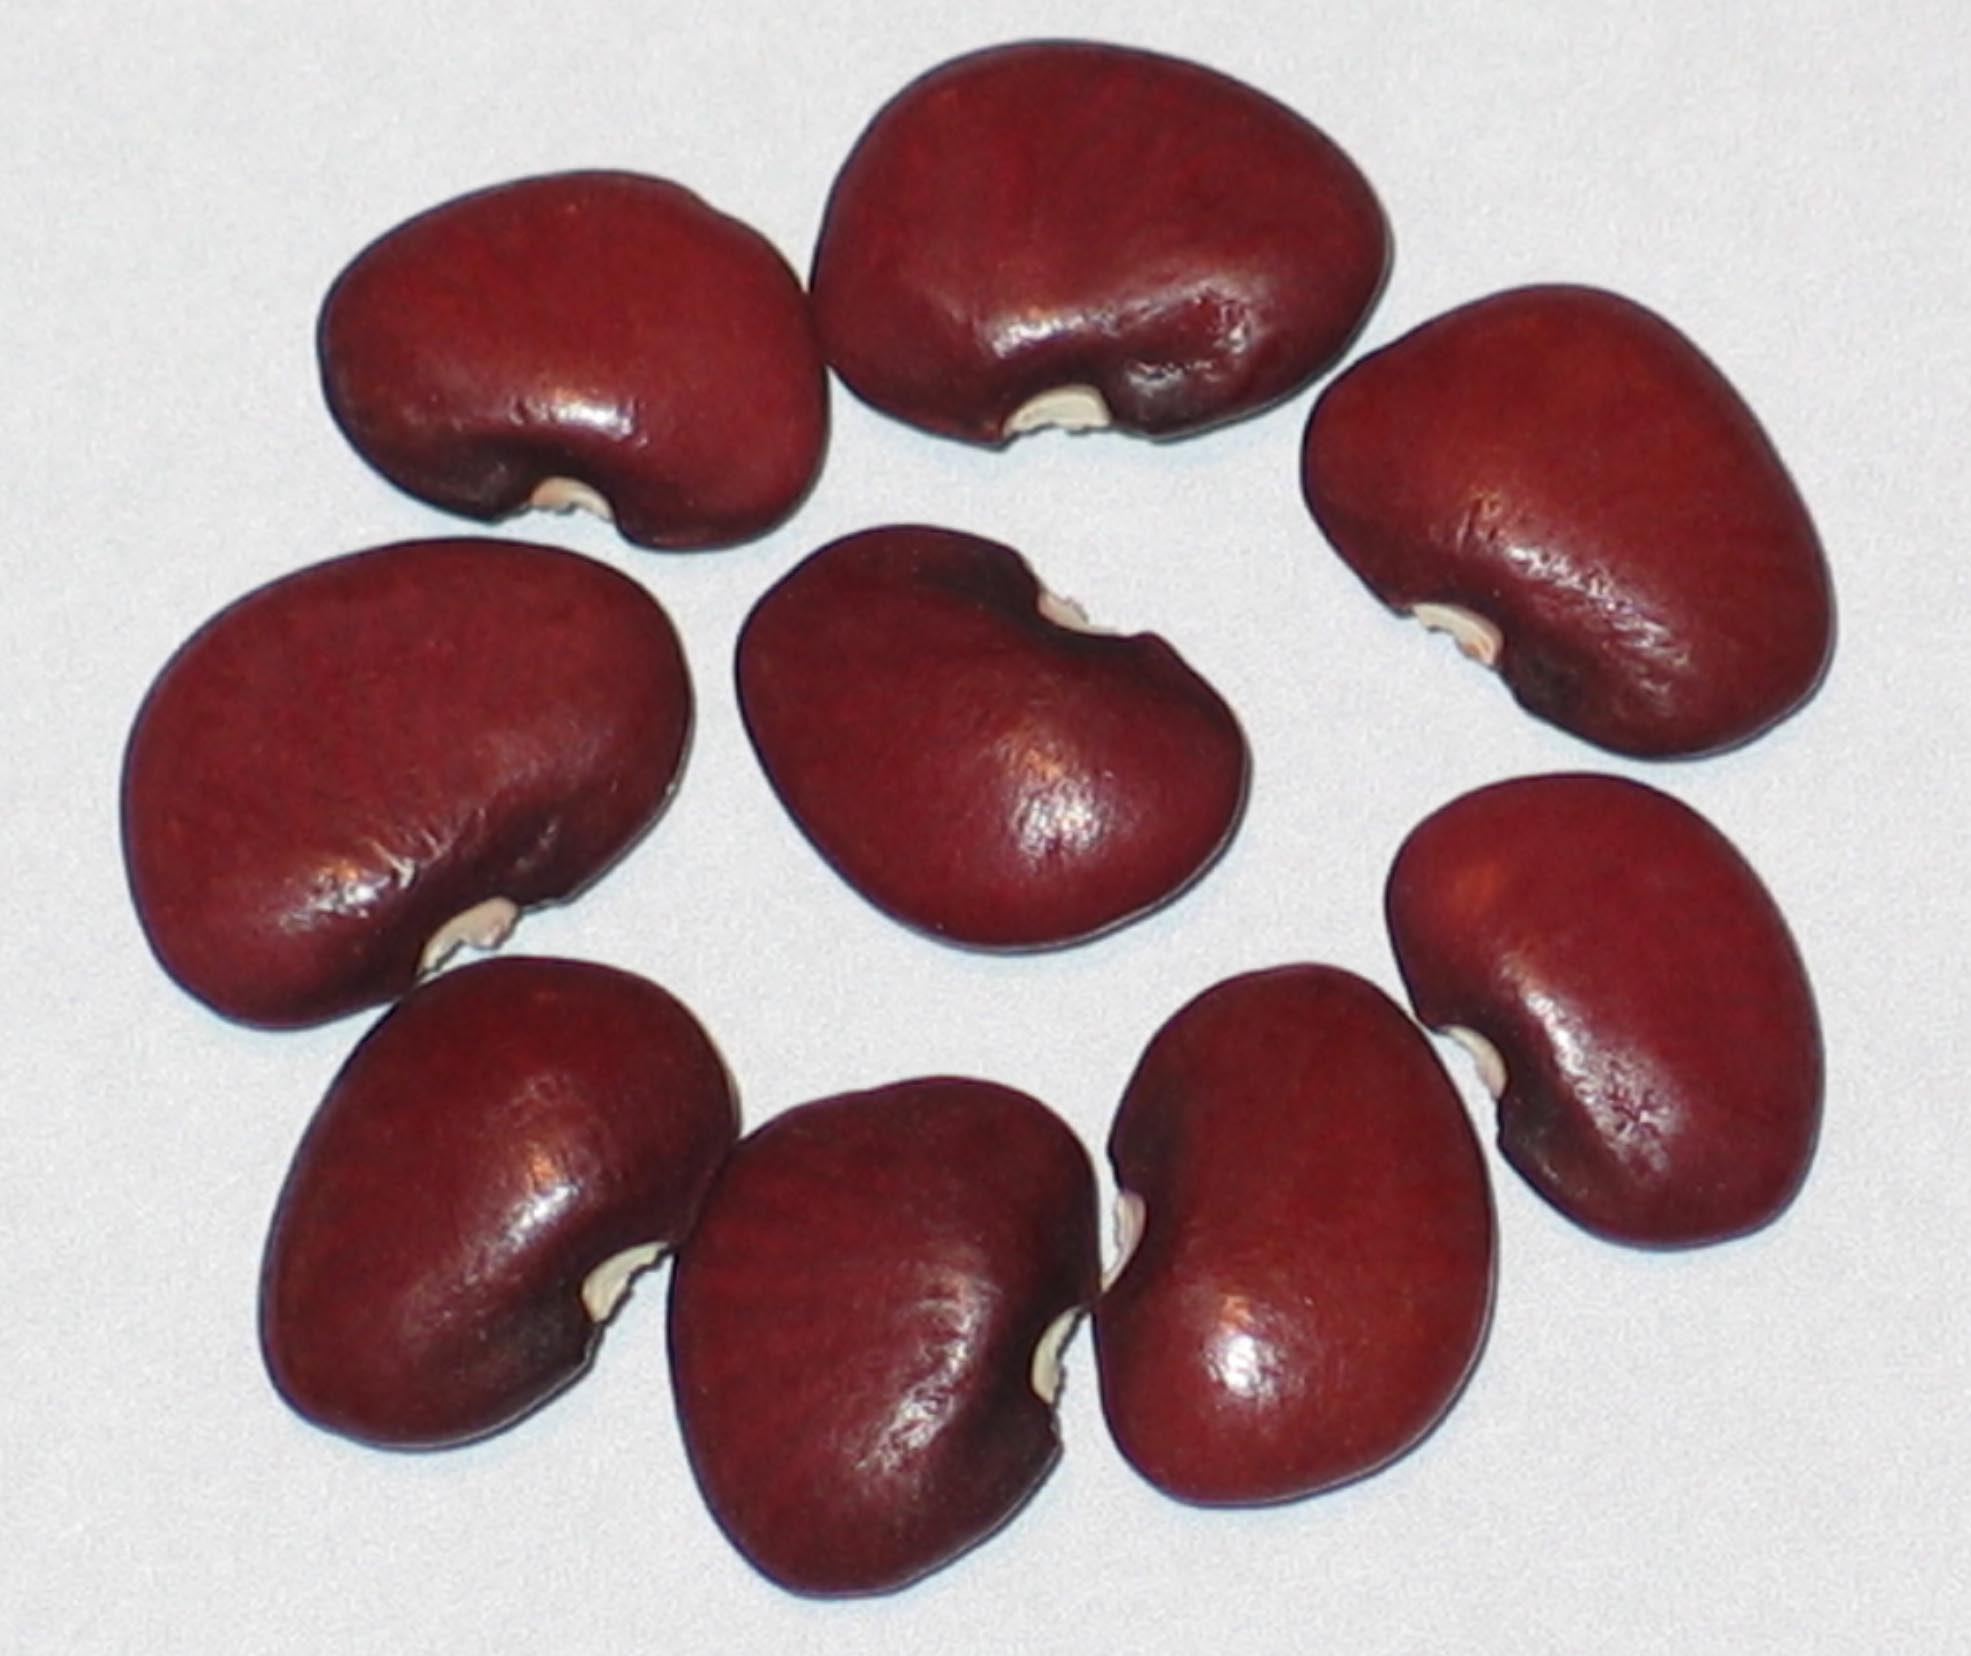 image of Red Lima beans